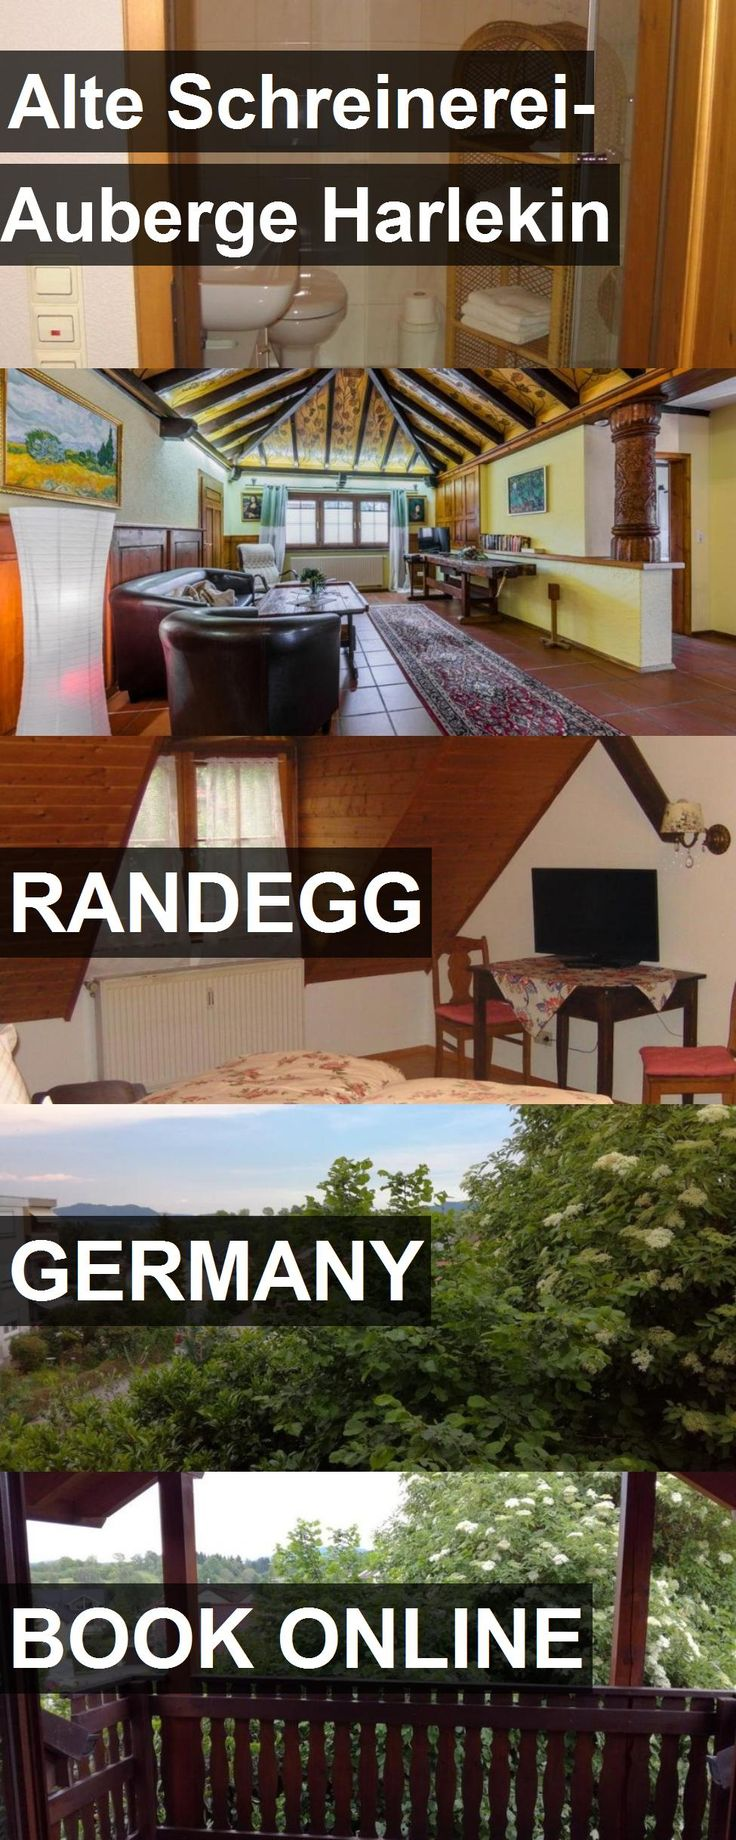 Hotel Alte Schreinerei-Auberge Harlekin in Randegg, Germany. For more information, photos, reviews and best prices please follow the link. #Germany #Randegg #AlteSchreinerei-AubergeHarlekin #hotel #travel #vacation